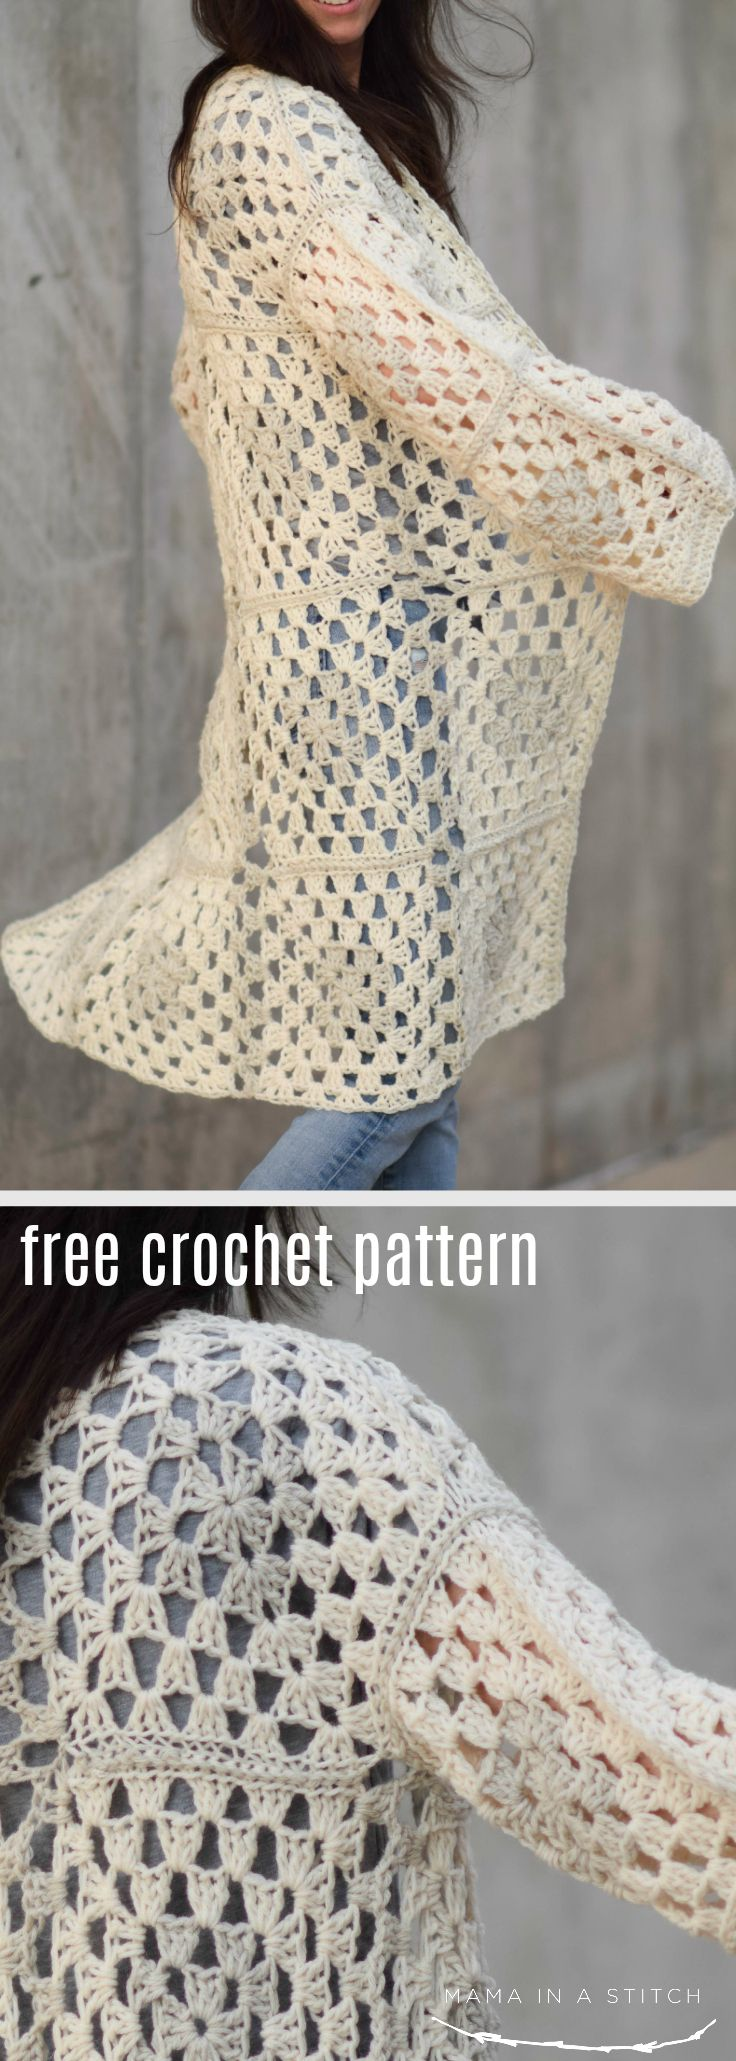 8fcc3bbb1a54 This crocheted sweater pattern is so cute for fall and winter! It s easy to  make with granny squares and there are links to tutorials throughout the  free ...